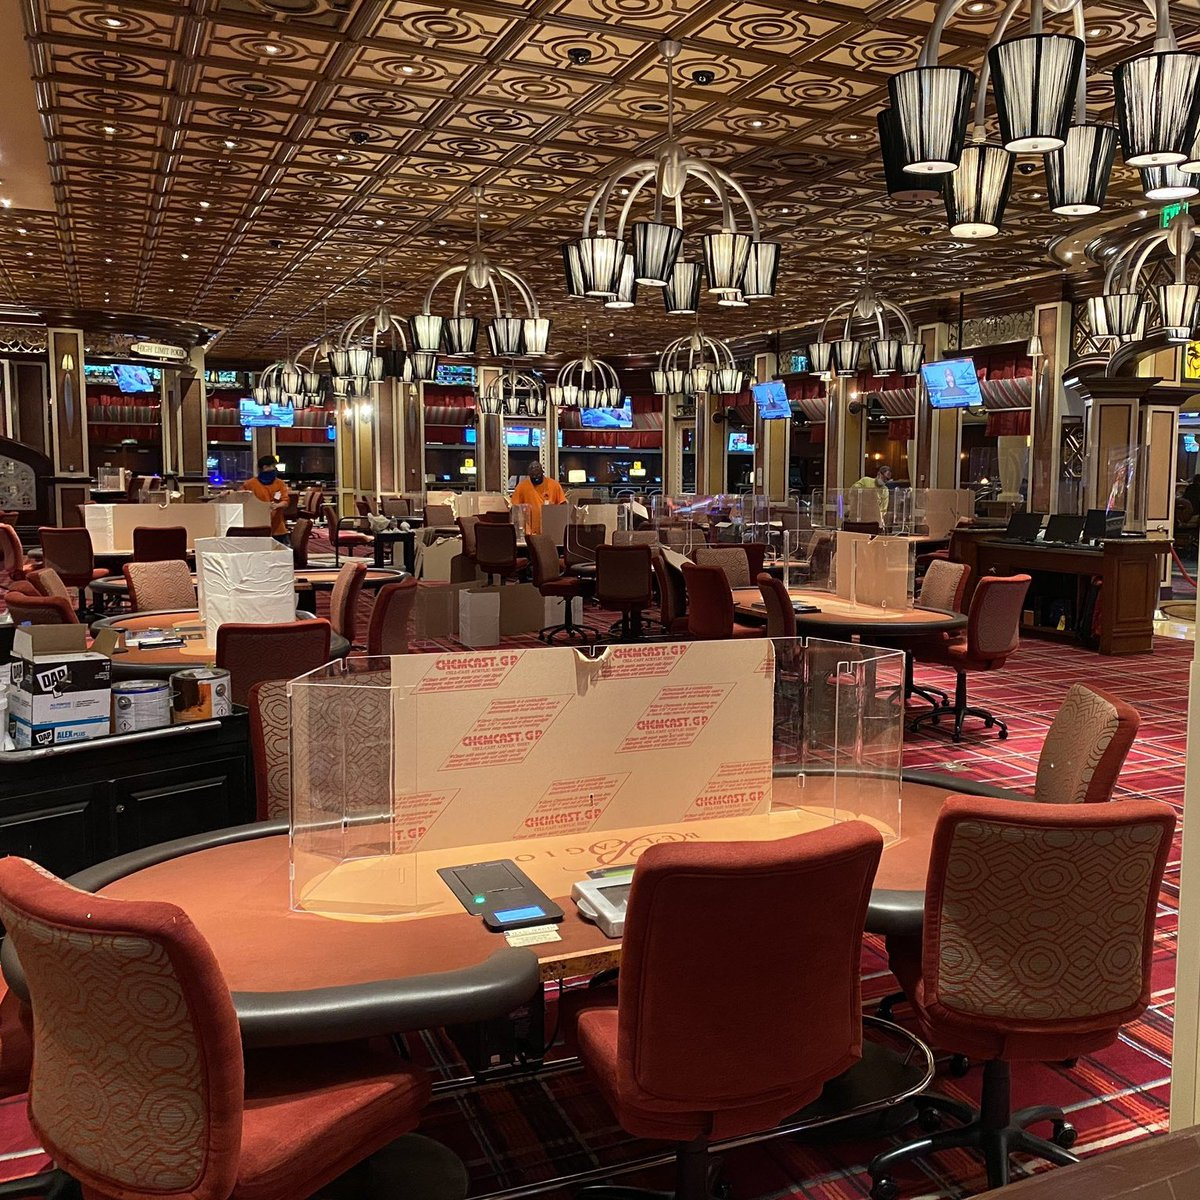 """Las Vegas Locally 🌴 on Twitter: """"The Bellagio poker room opens at 10 am, with some fresh plexiglass ♠️ (h/t @gettoknowvegas)… """""""